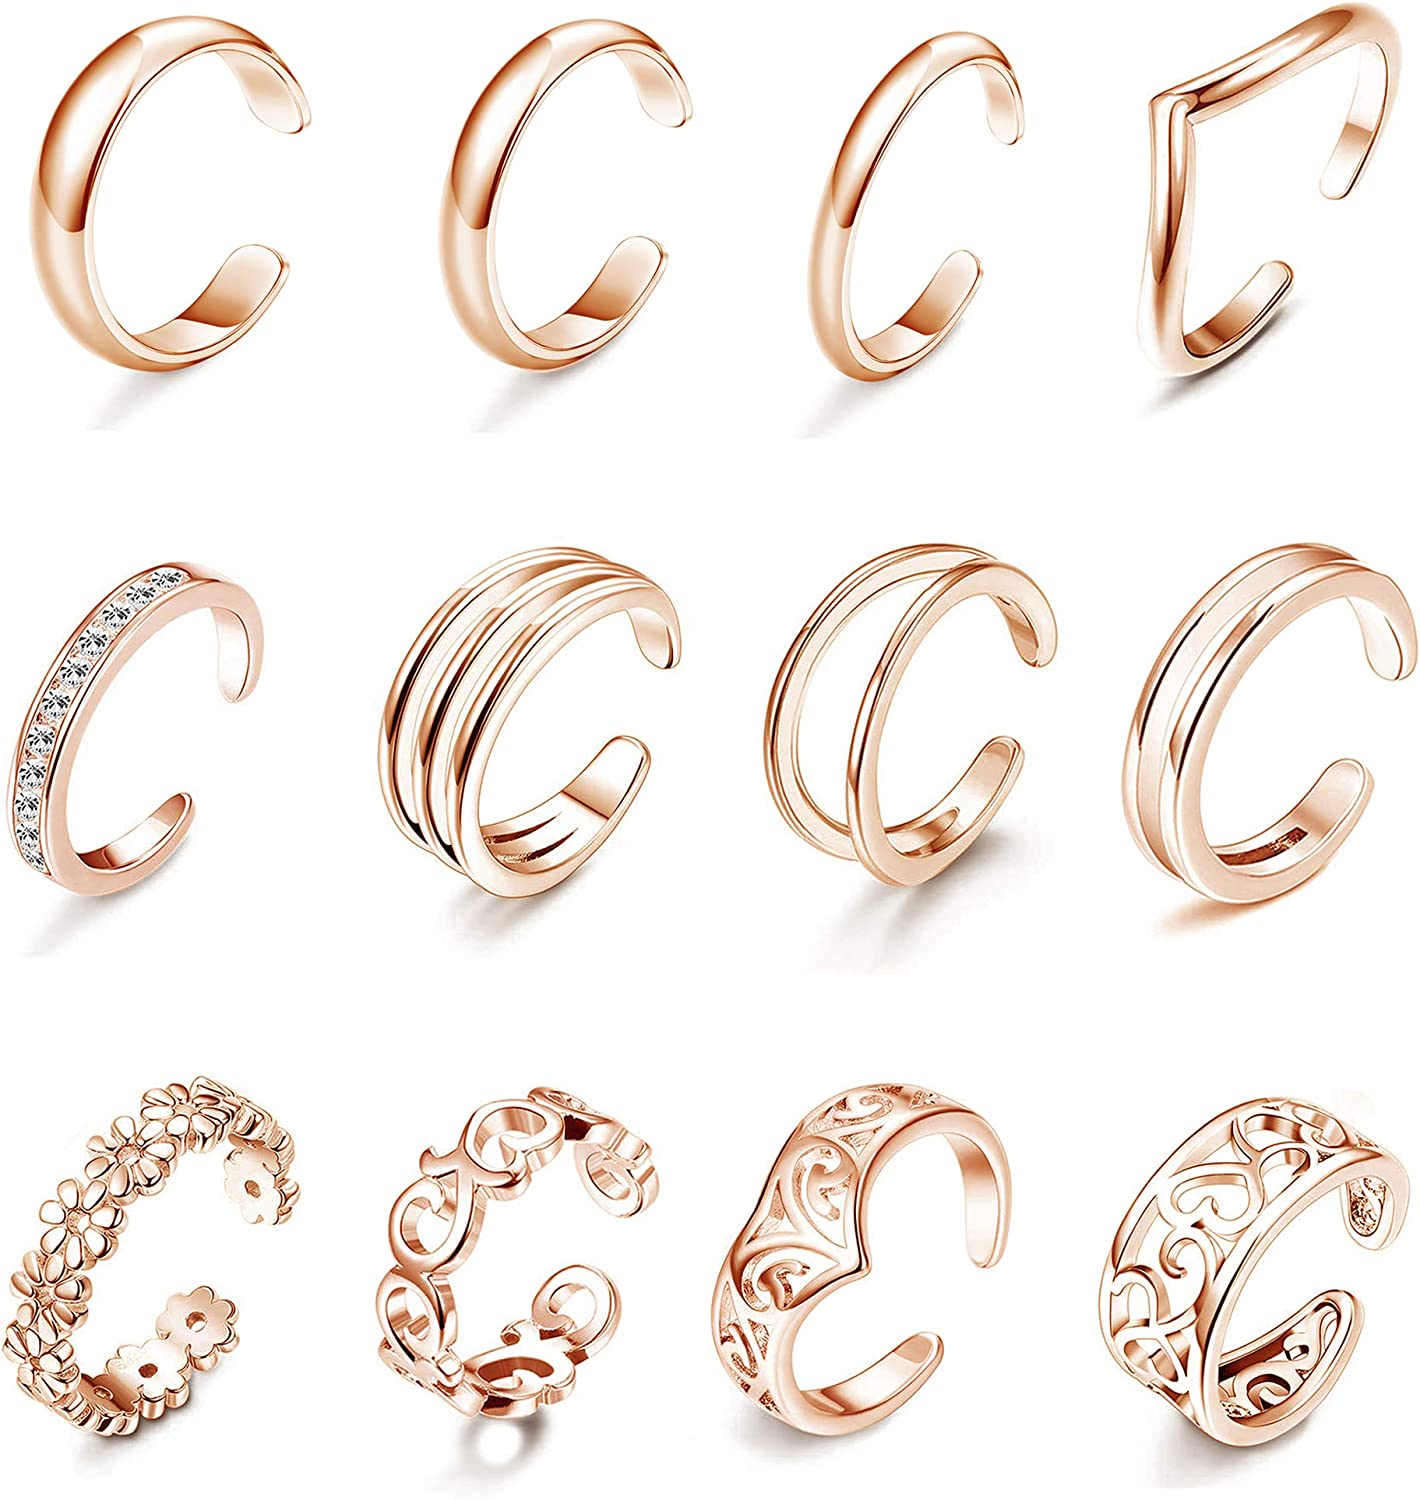 Subiceto 12 PCS Open Toe Rings Tail Challenge the lowest price Rin Tucson Mall Women for Arrow Band